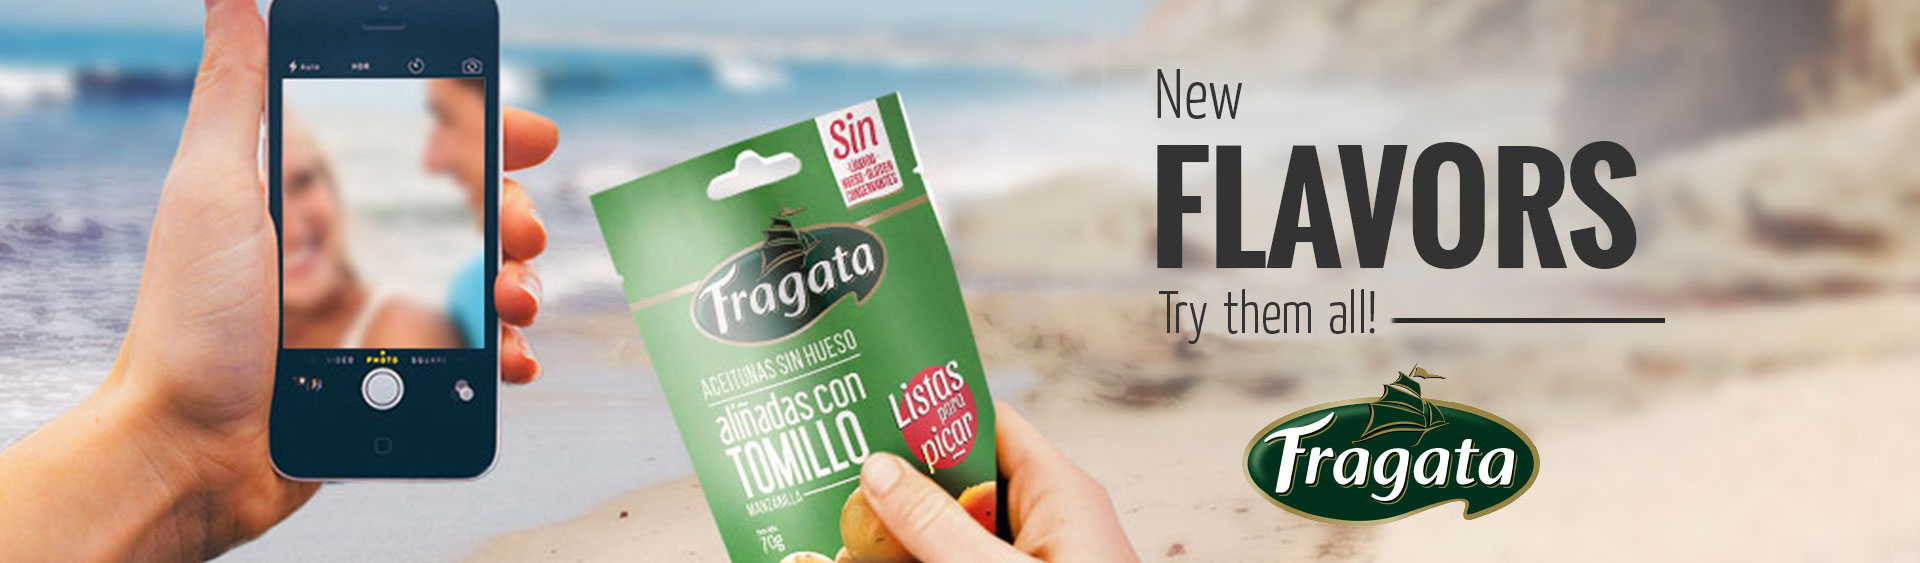 Snacking Fragata flavours